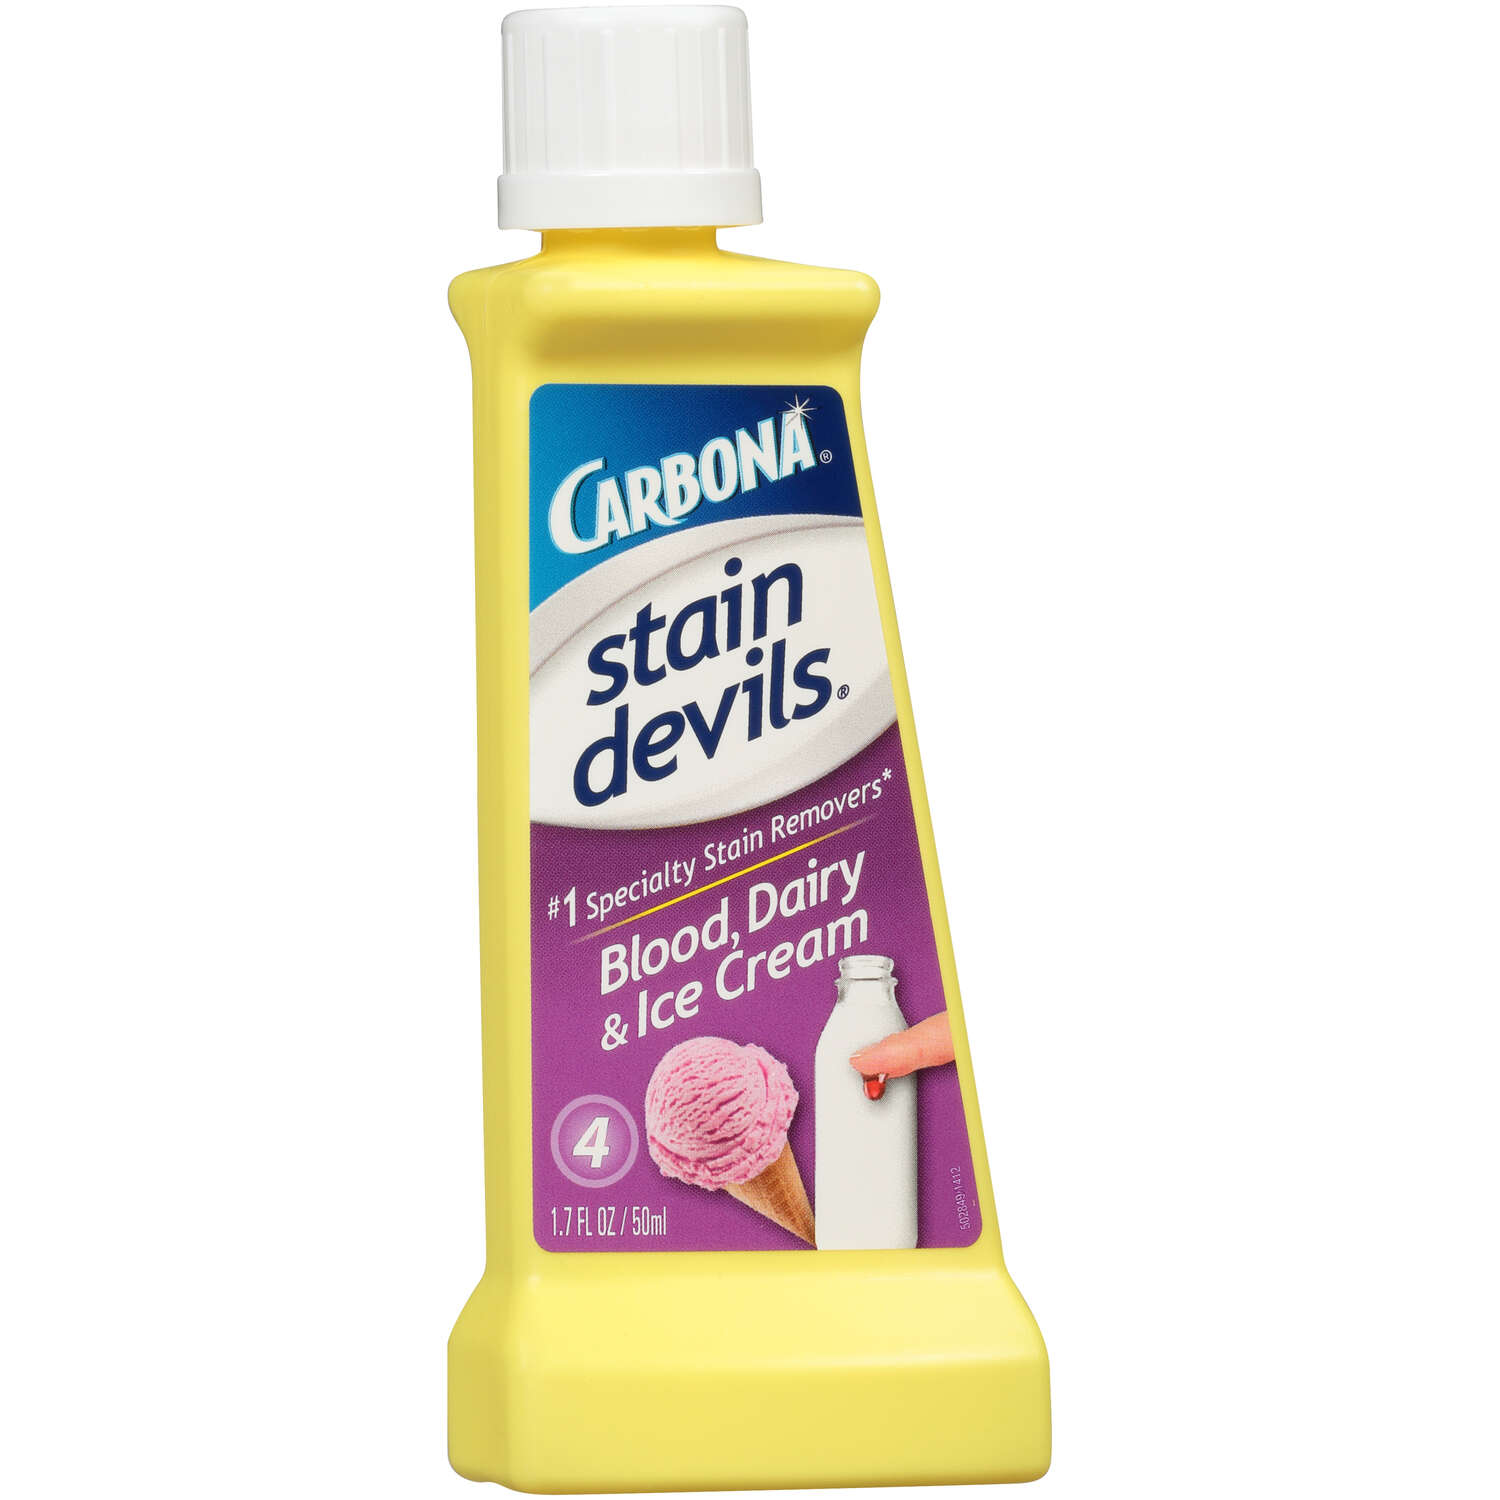 Carbona Stain Devils No Scent Stain Remover Liquid 1 pk